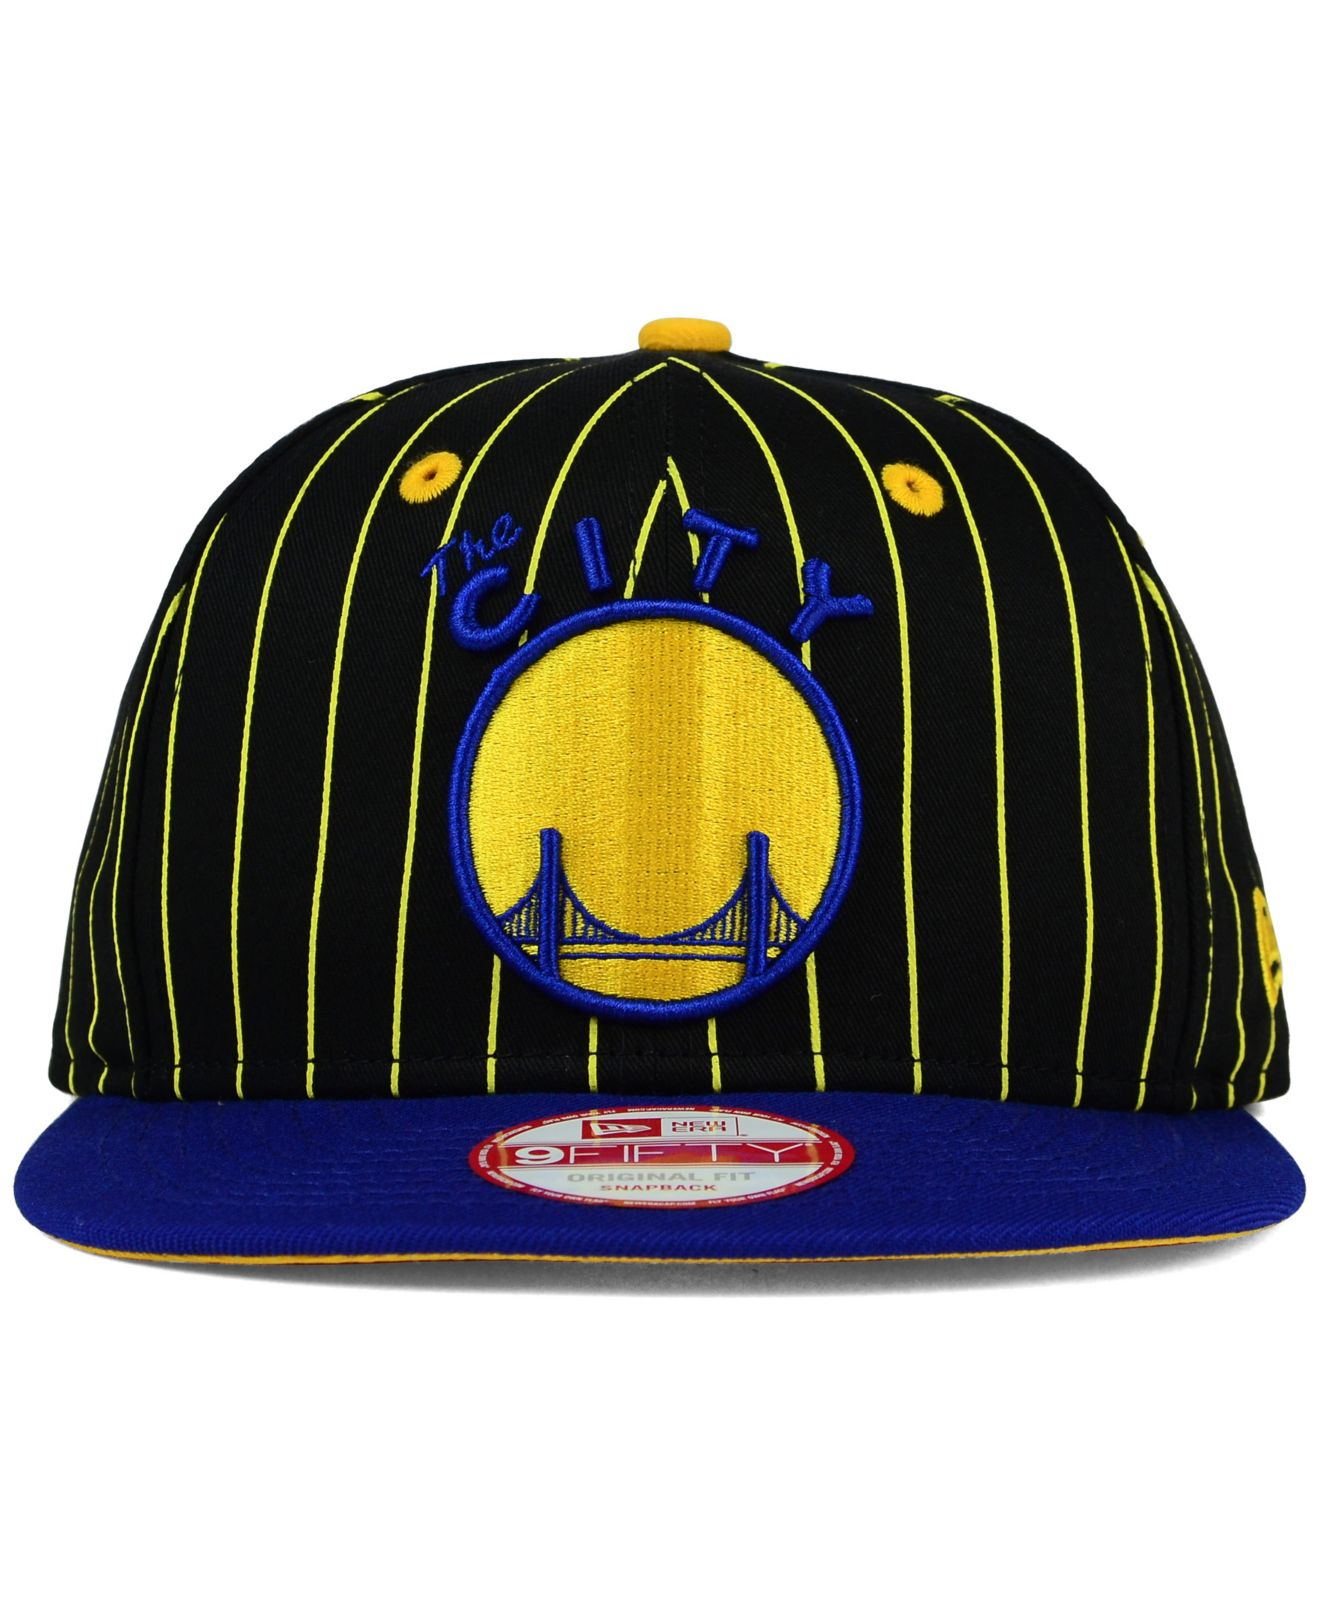 a5431e11a945f9 KTZ Golden State Warriors Vintage Pinstripe 9fifty Snapback Cap in ...